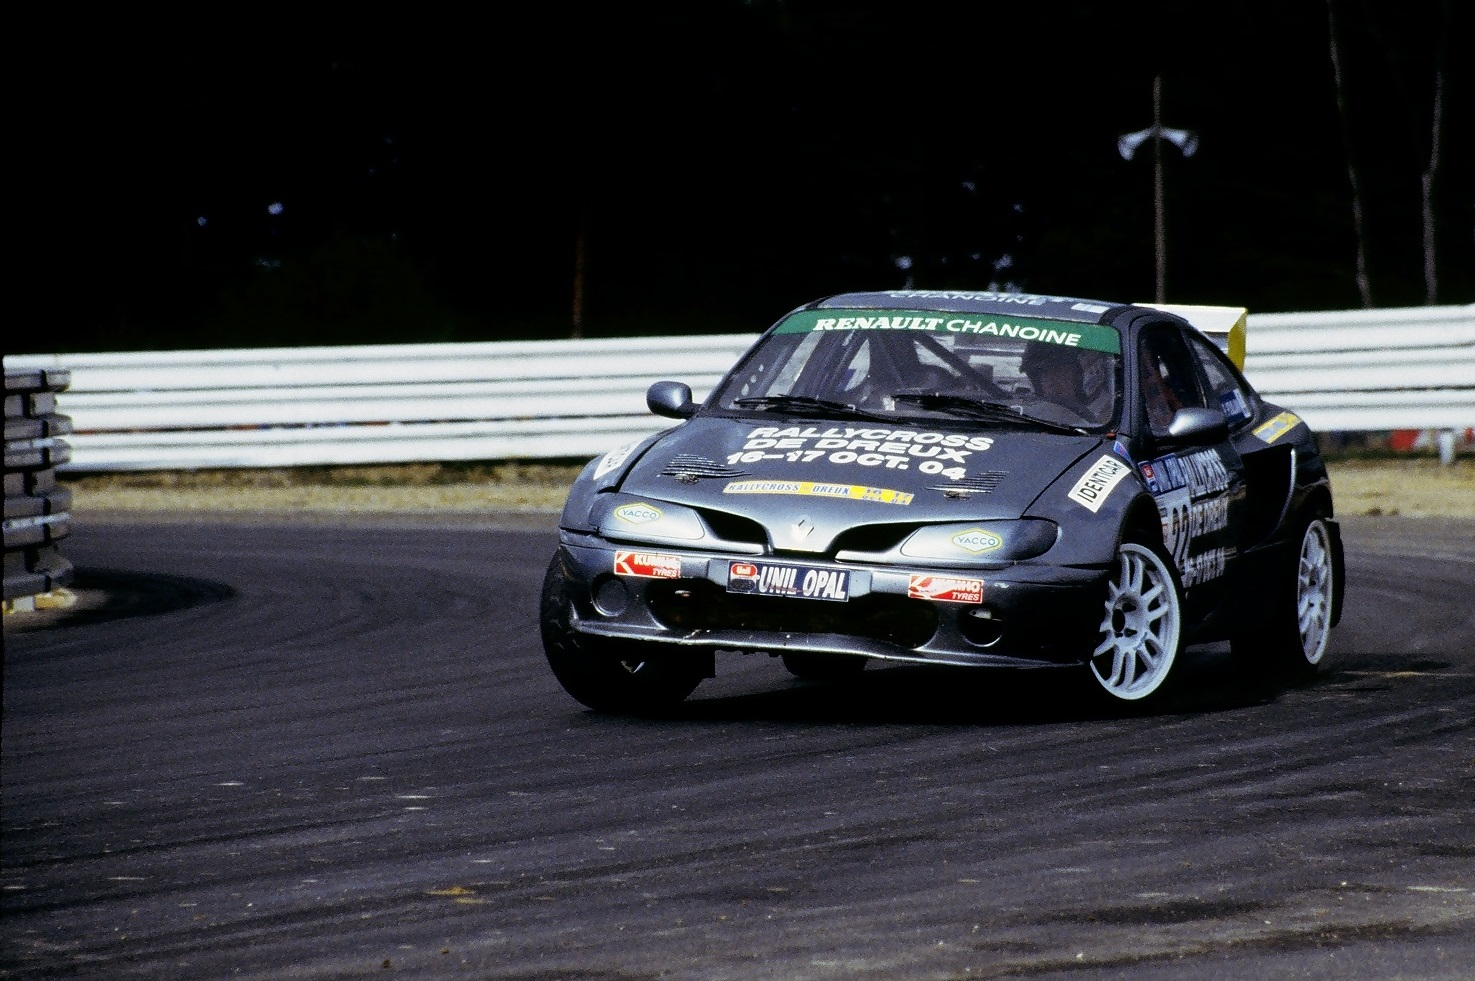 Mégane-Renault-Rallycross - Photo-Thierry-Le-Bras